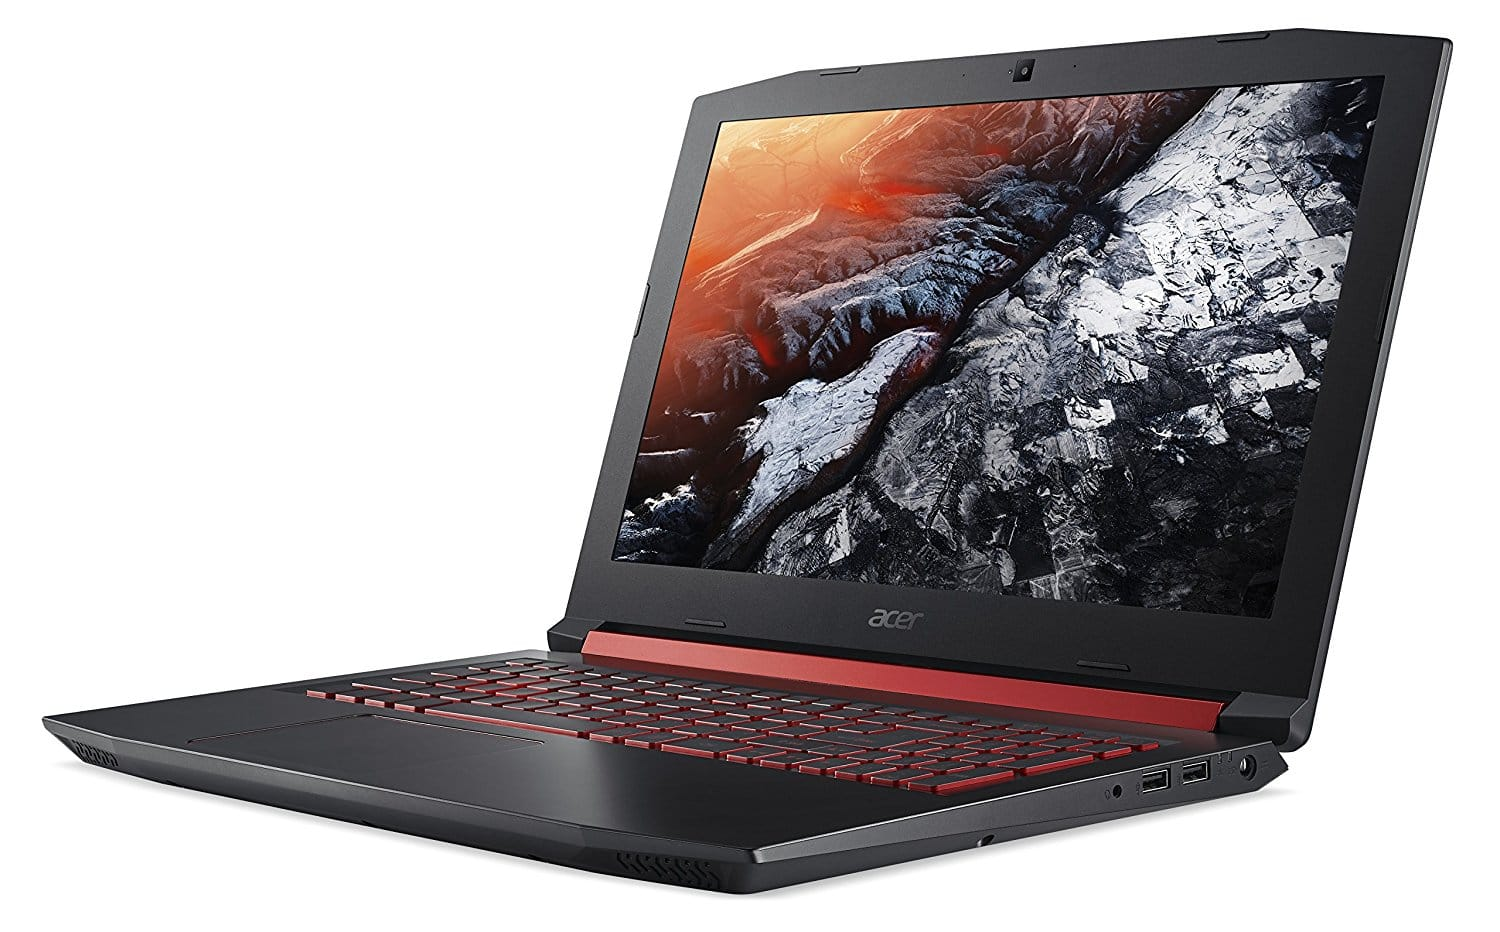 "Acer Nitro 5 Laptop: Intel Core i5-7300HQ, 15.6"" 1080p IPS, 8GB DDR4, 256GB SSD, GTX 1050 4GB, Win 10 $649.99 + Free Store Pickup @ Costco"